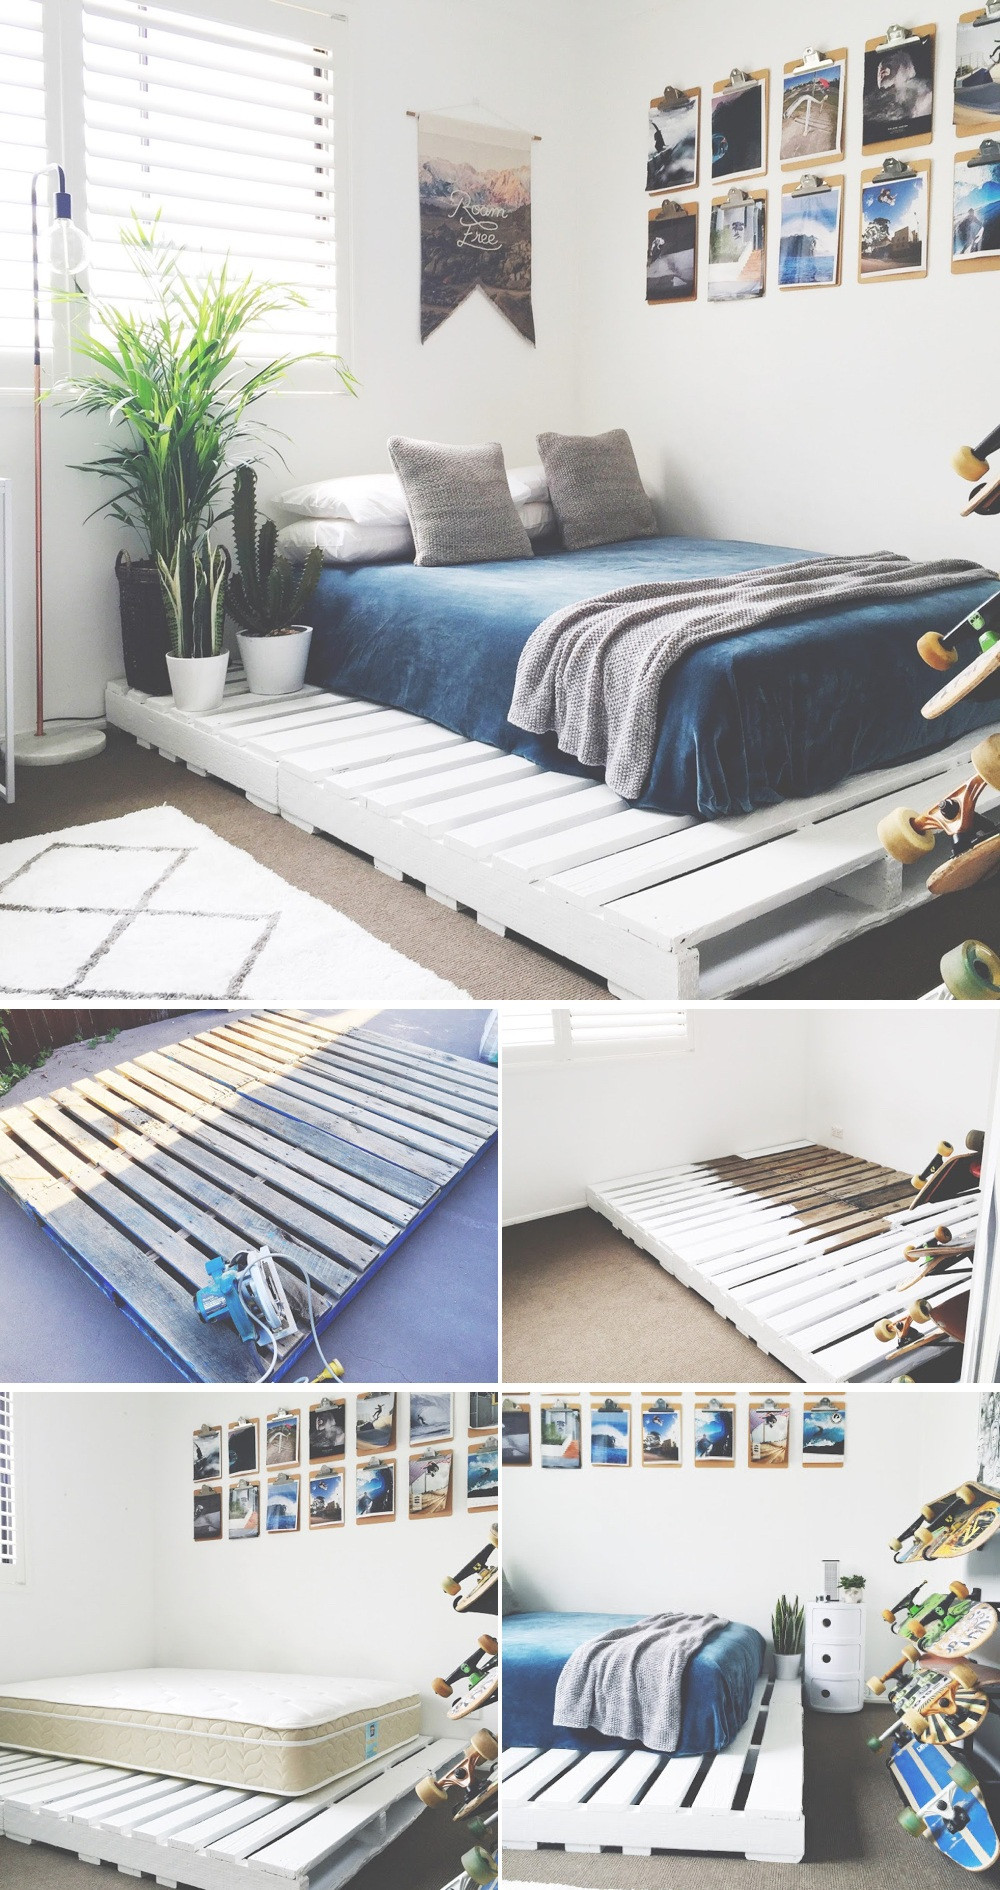 Best ideas about Bed Frame DIY . Save or Pin 36 Easy DIY Bed Frame Projects to Upgrade Your Bedroom Now.